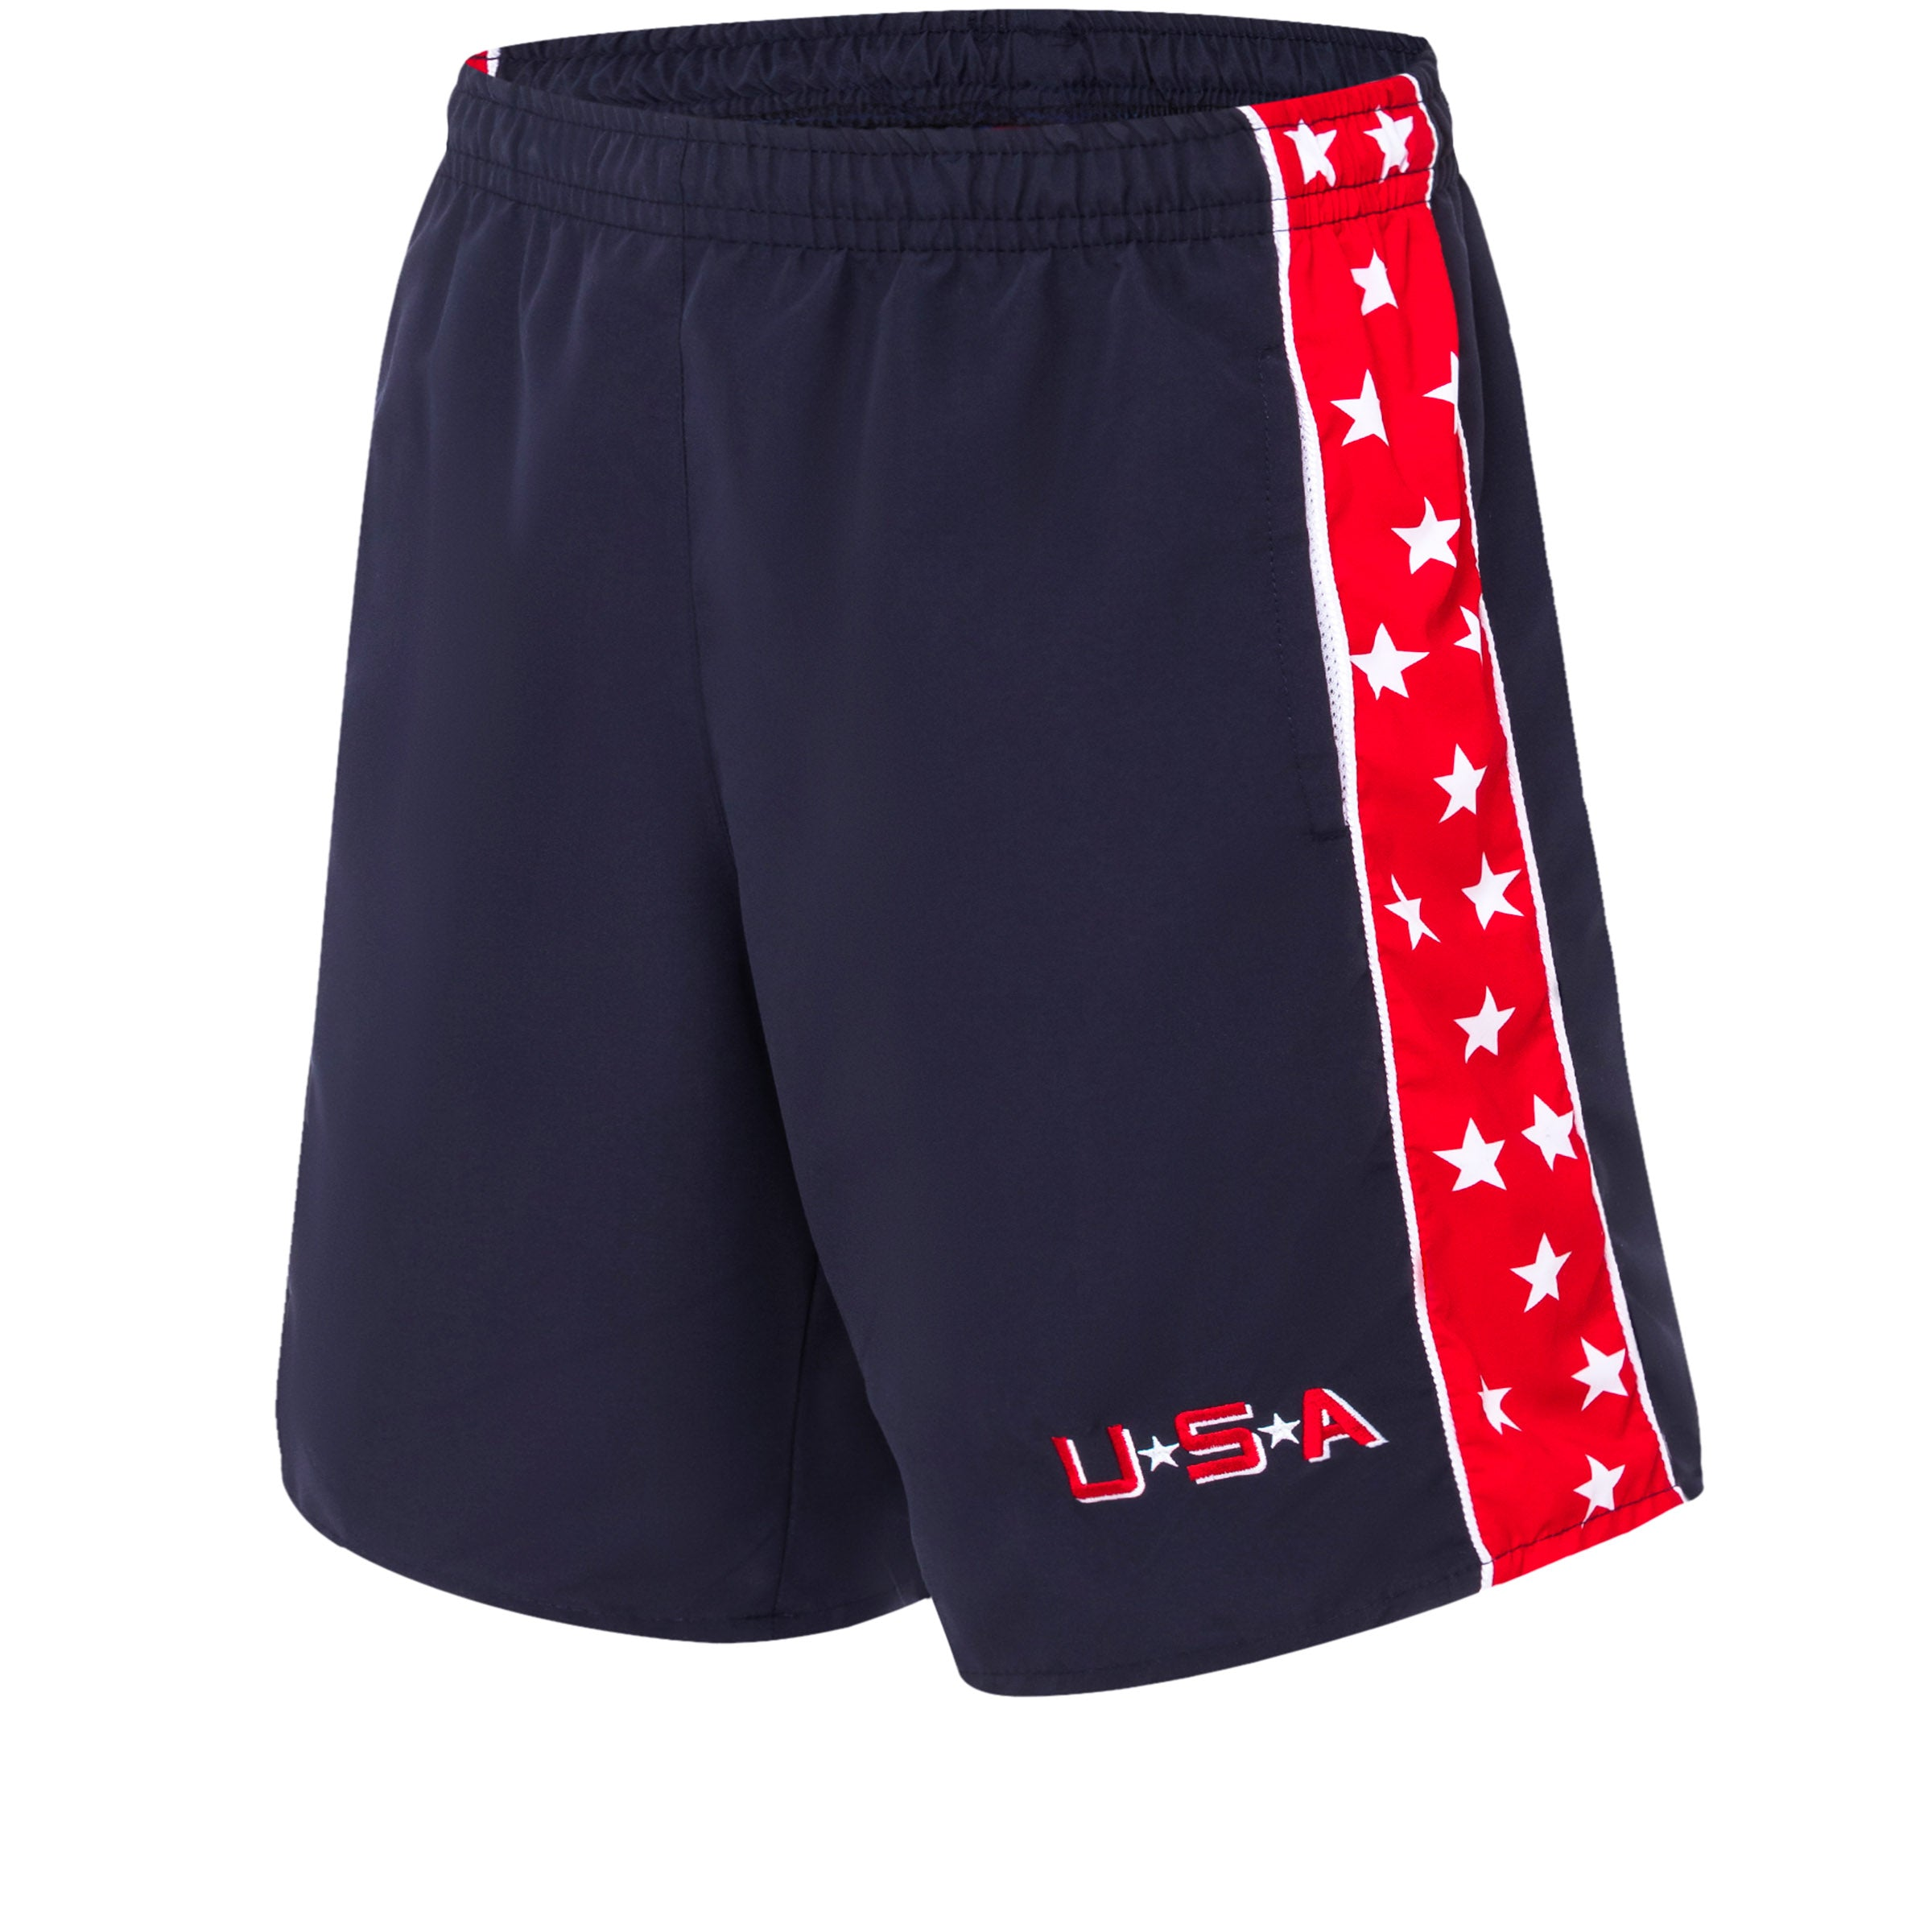 D2 Mighty Ducks Team USA Shorts - Streaker Sports